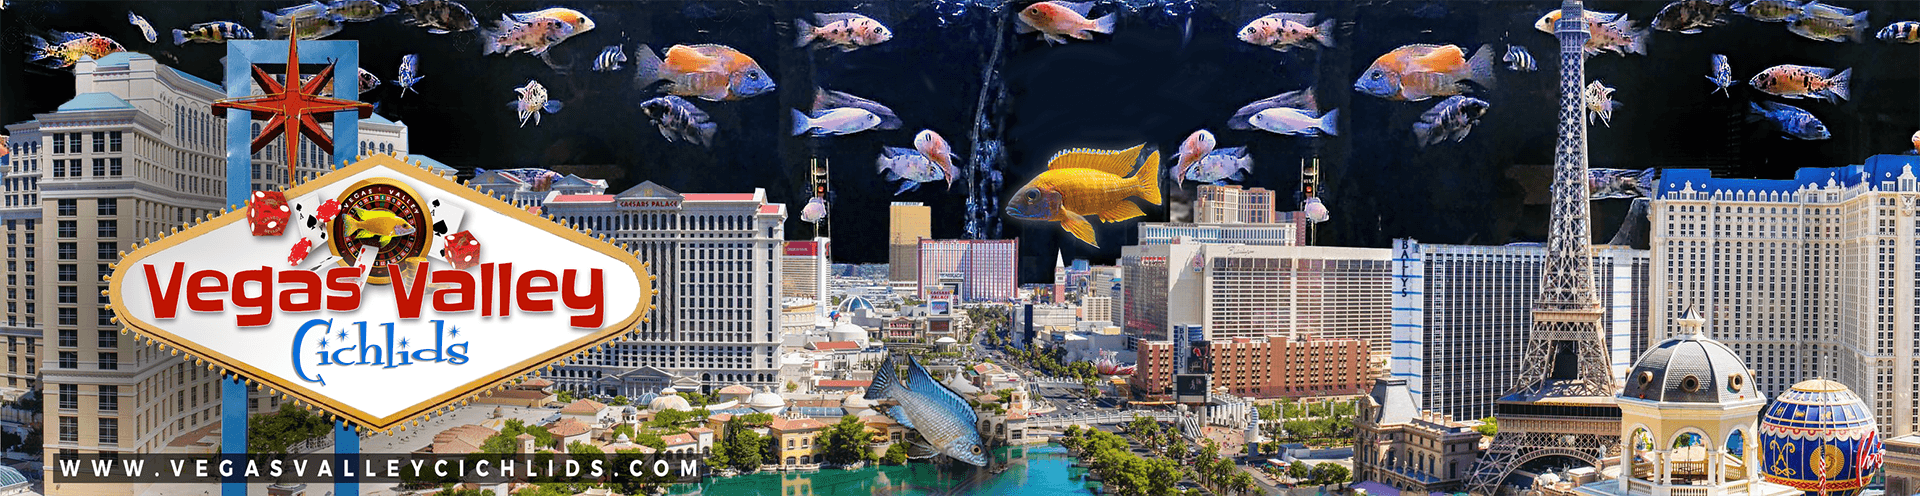 Vegas Valley Cichlids